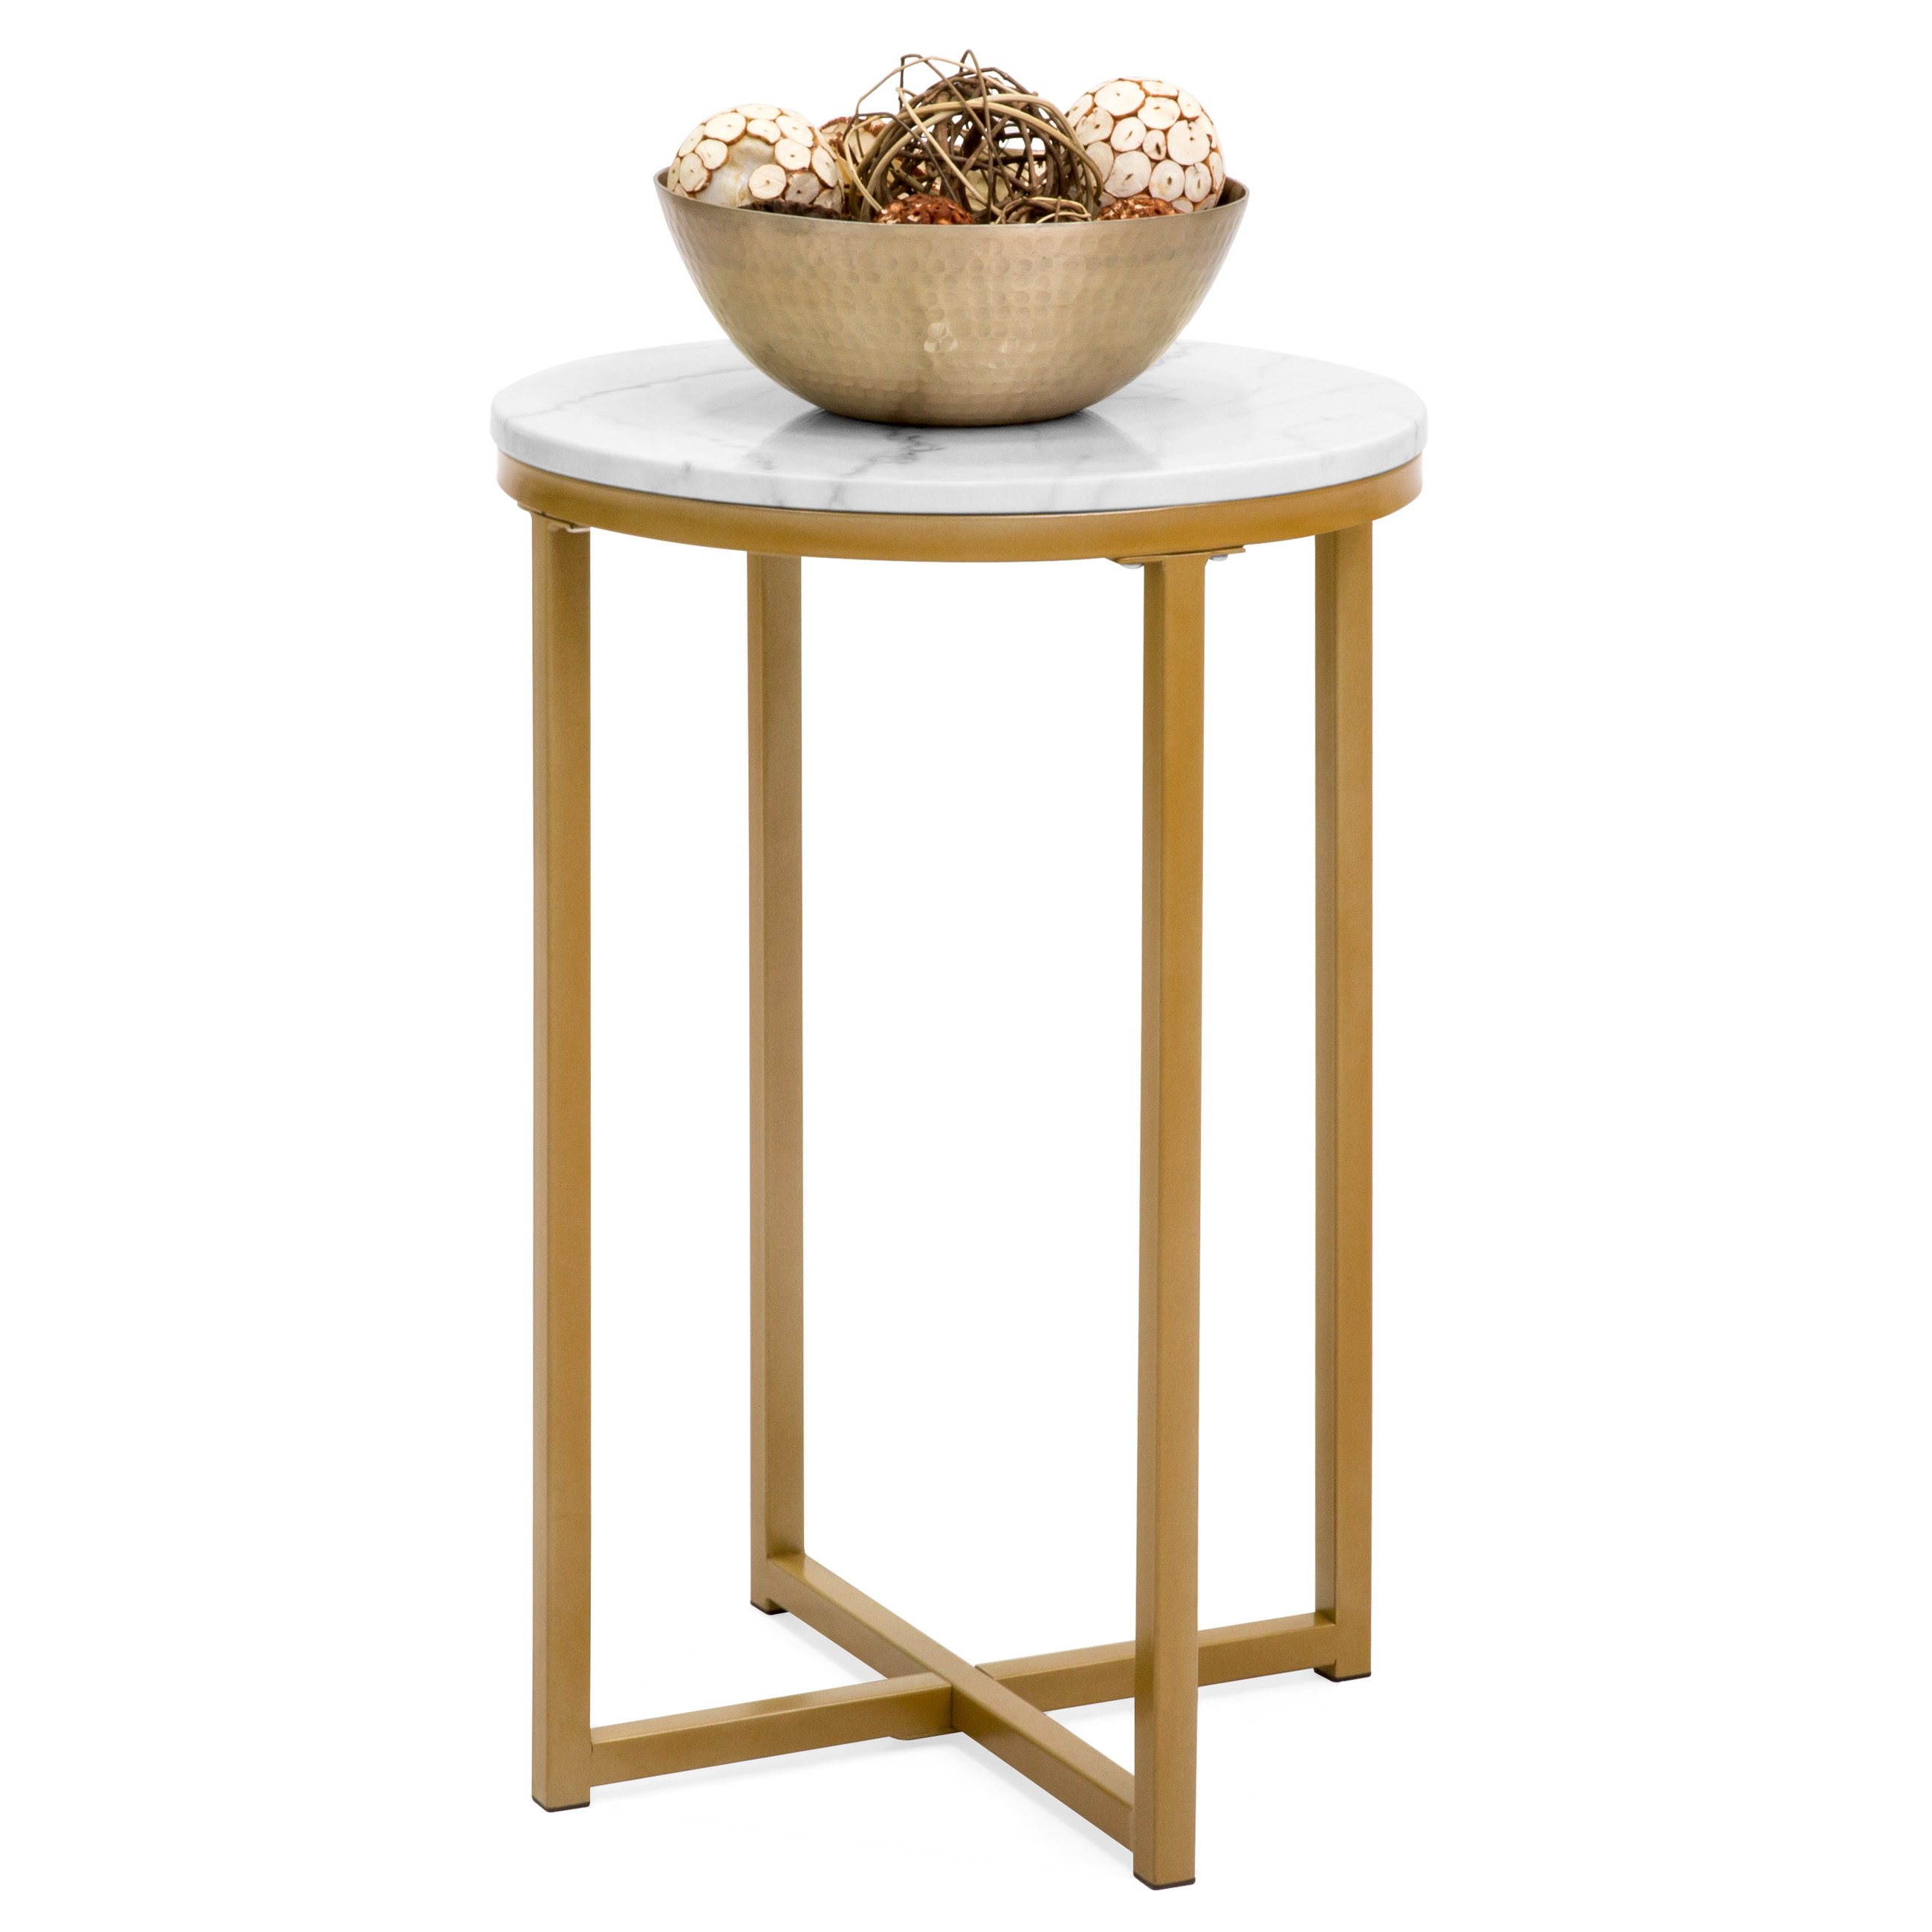 Best Choice Products 16in Modern Living Room Round Side End Accent Coffee Table Nightstand w/ Metal Frame, Faux Marble Top - White/Gold